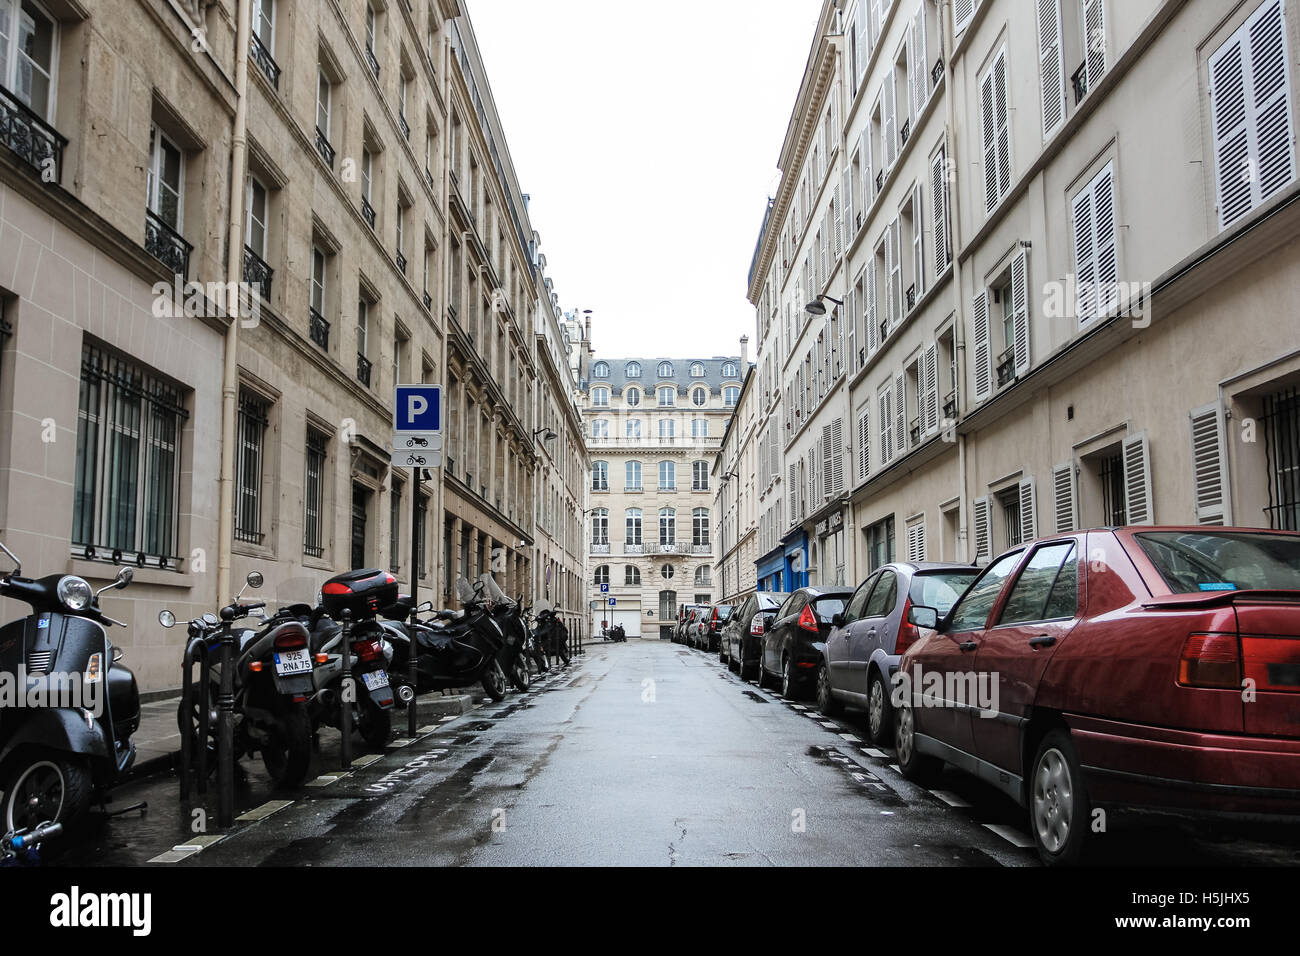 paris france december 31 2011 typical paris street view with stock photo 123955053 alamy. Black Bedroom Furniture Sets. Home Design Ideas